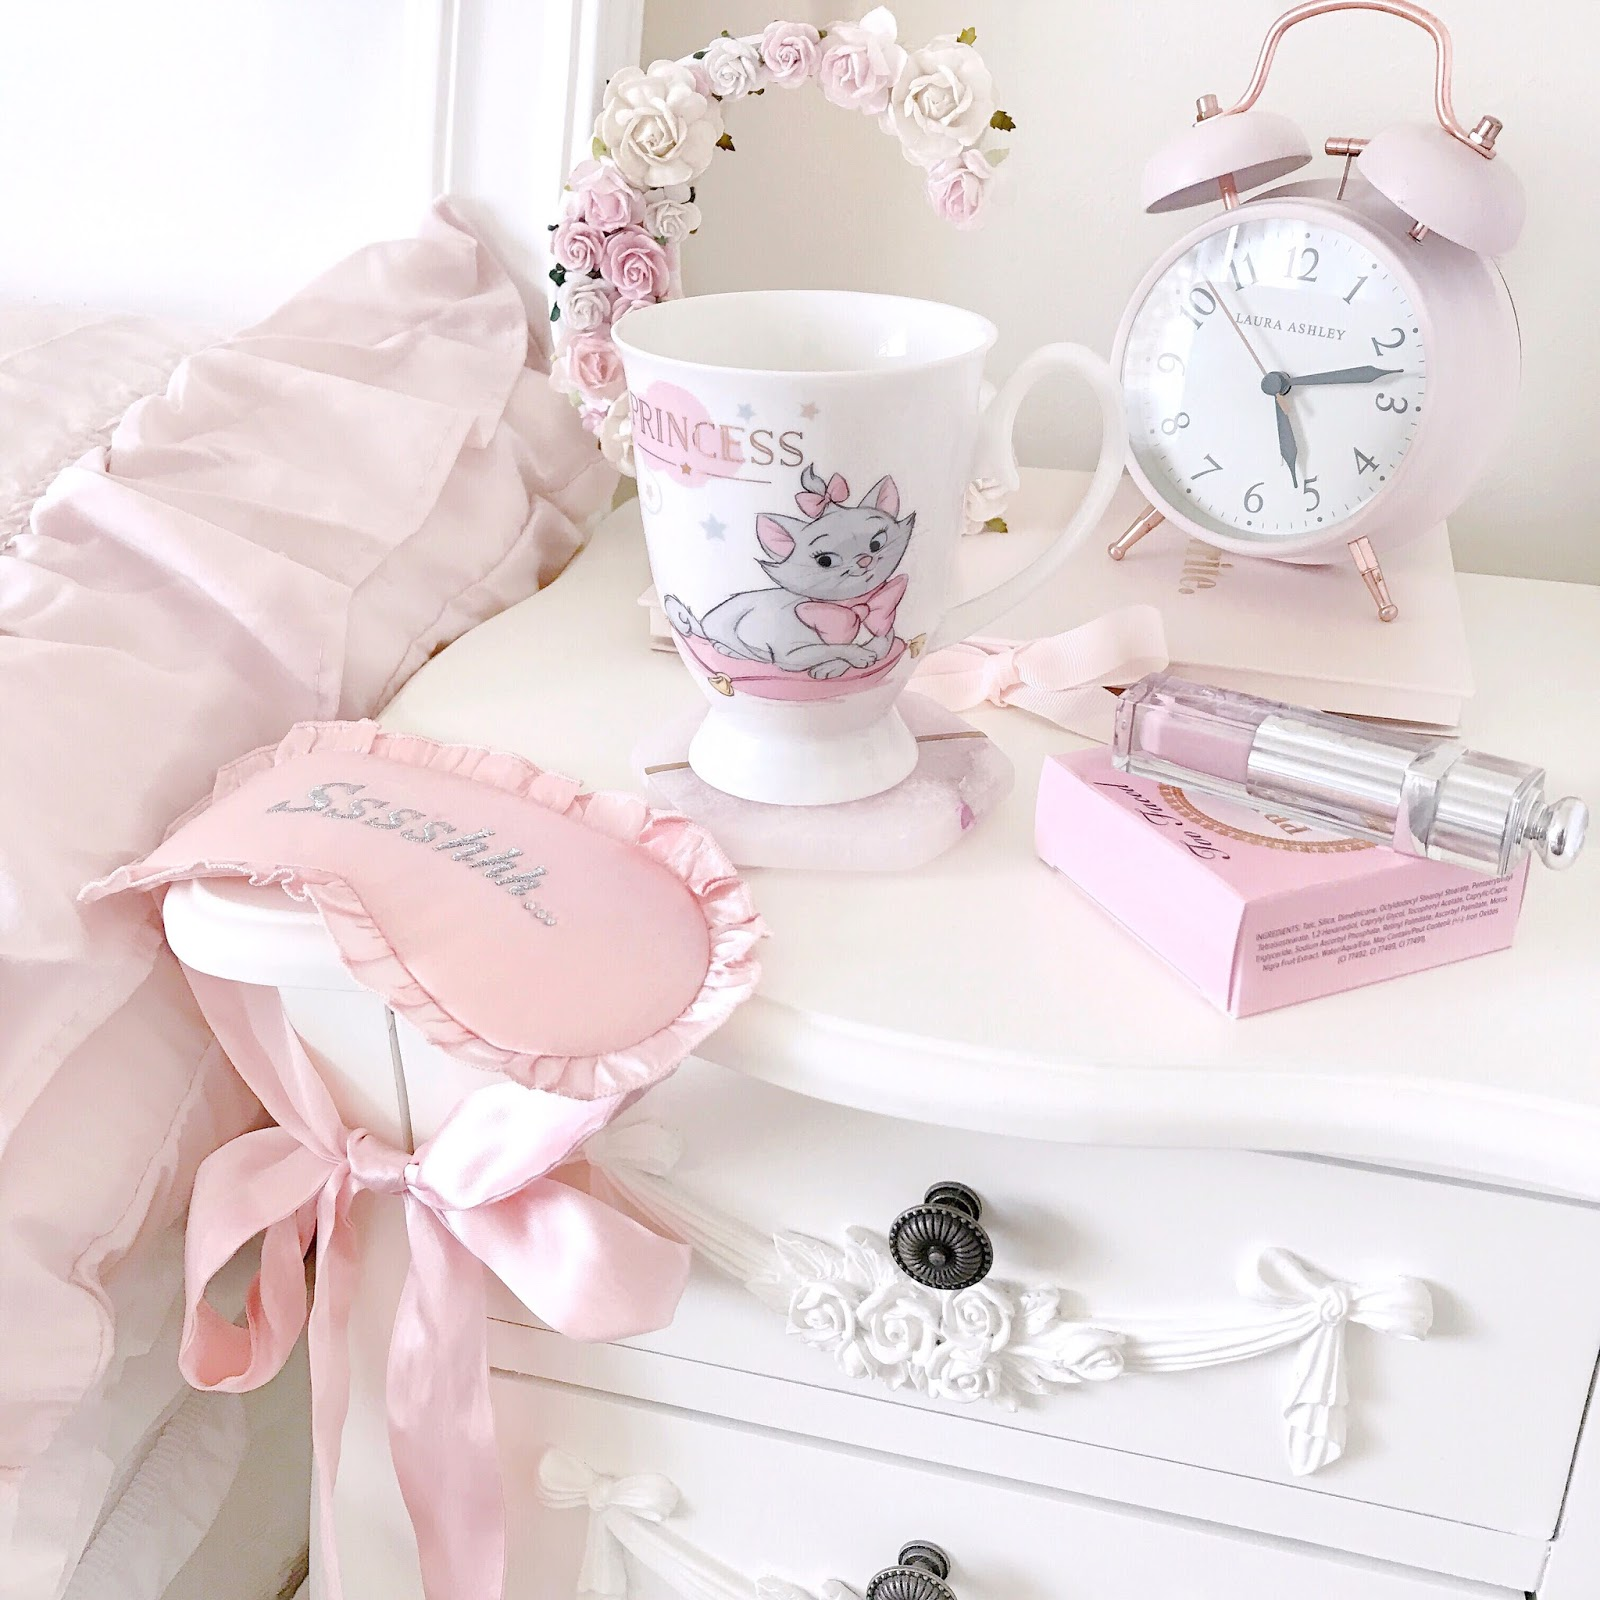 Pretty Bedside Details | Love, Catherine